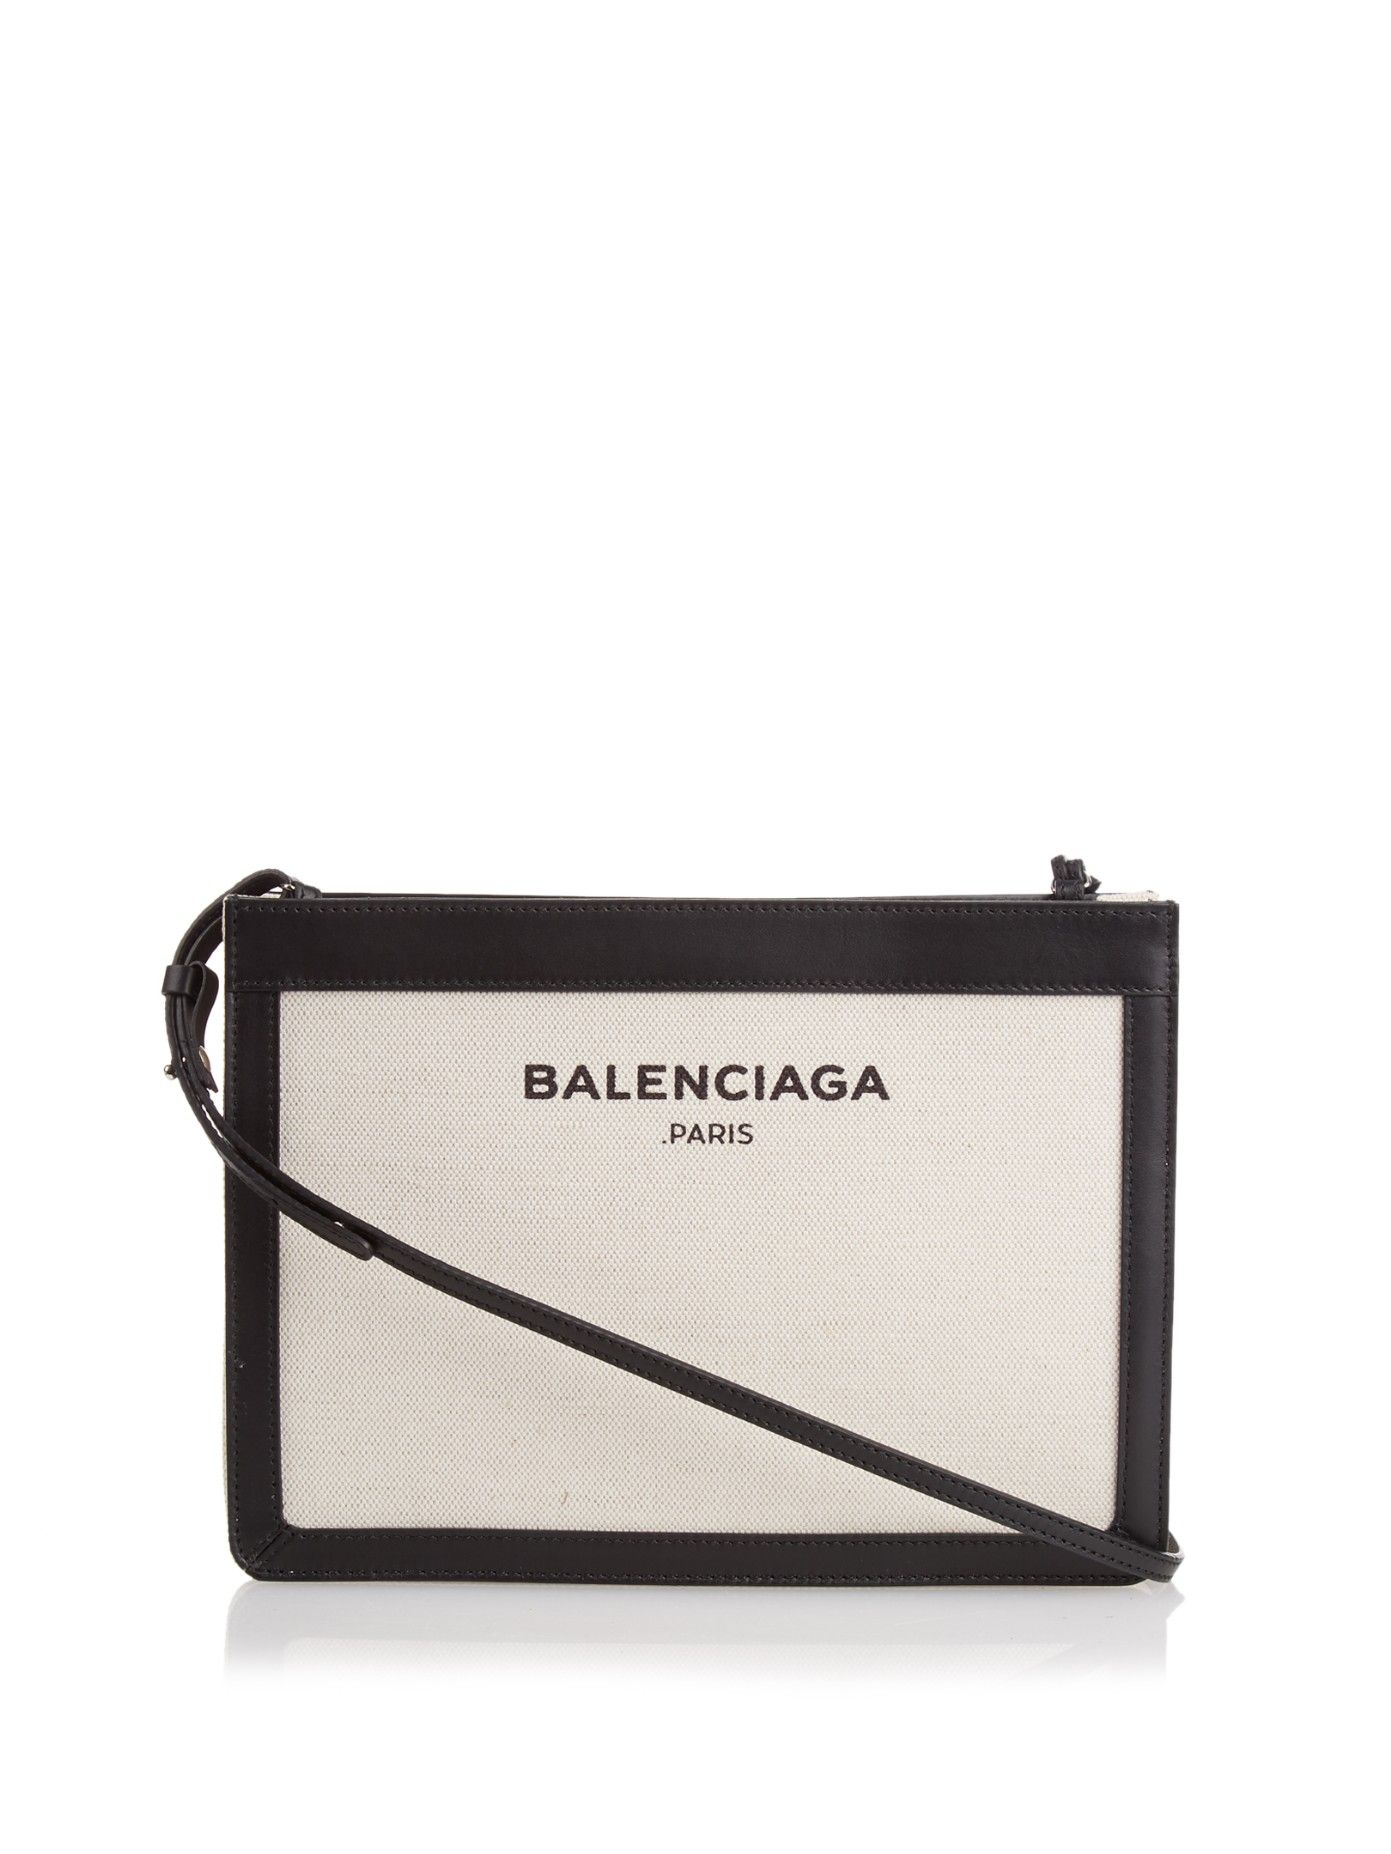 910474b58 Navy Pochette cotton-canvas cross-body bag by Balenciaga | Shop now at  #MATCHESFASHION.COM